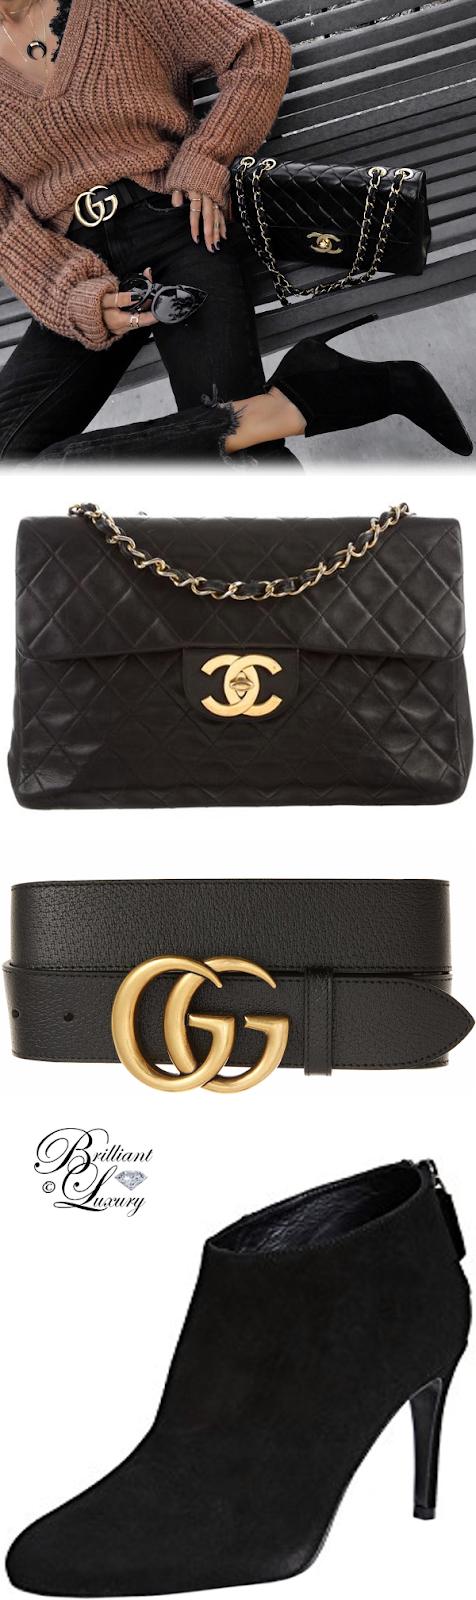 Brilliant Luxury ♦ Chanel vintage Flap bag and Gucci Marmont Logo bag and L.K.Bennet Emily booties #black #streetstyle